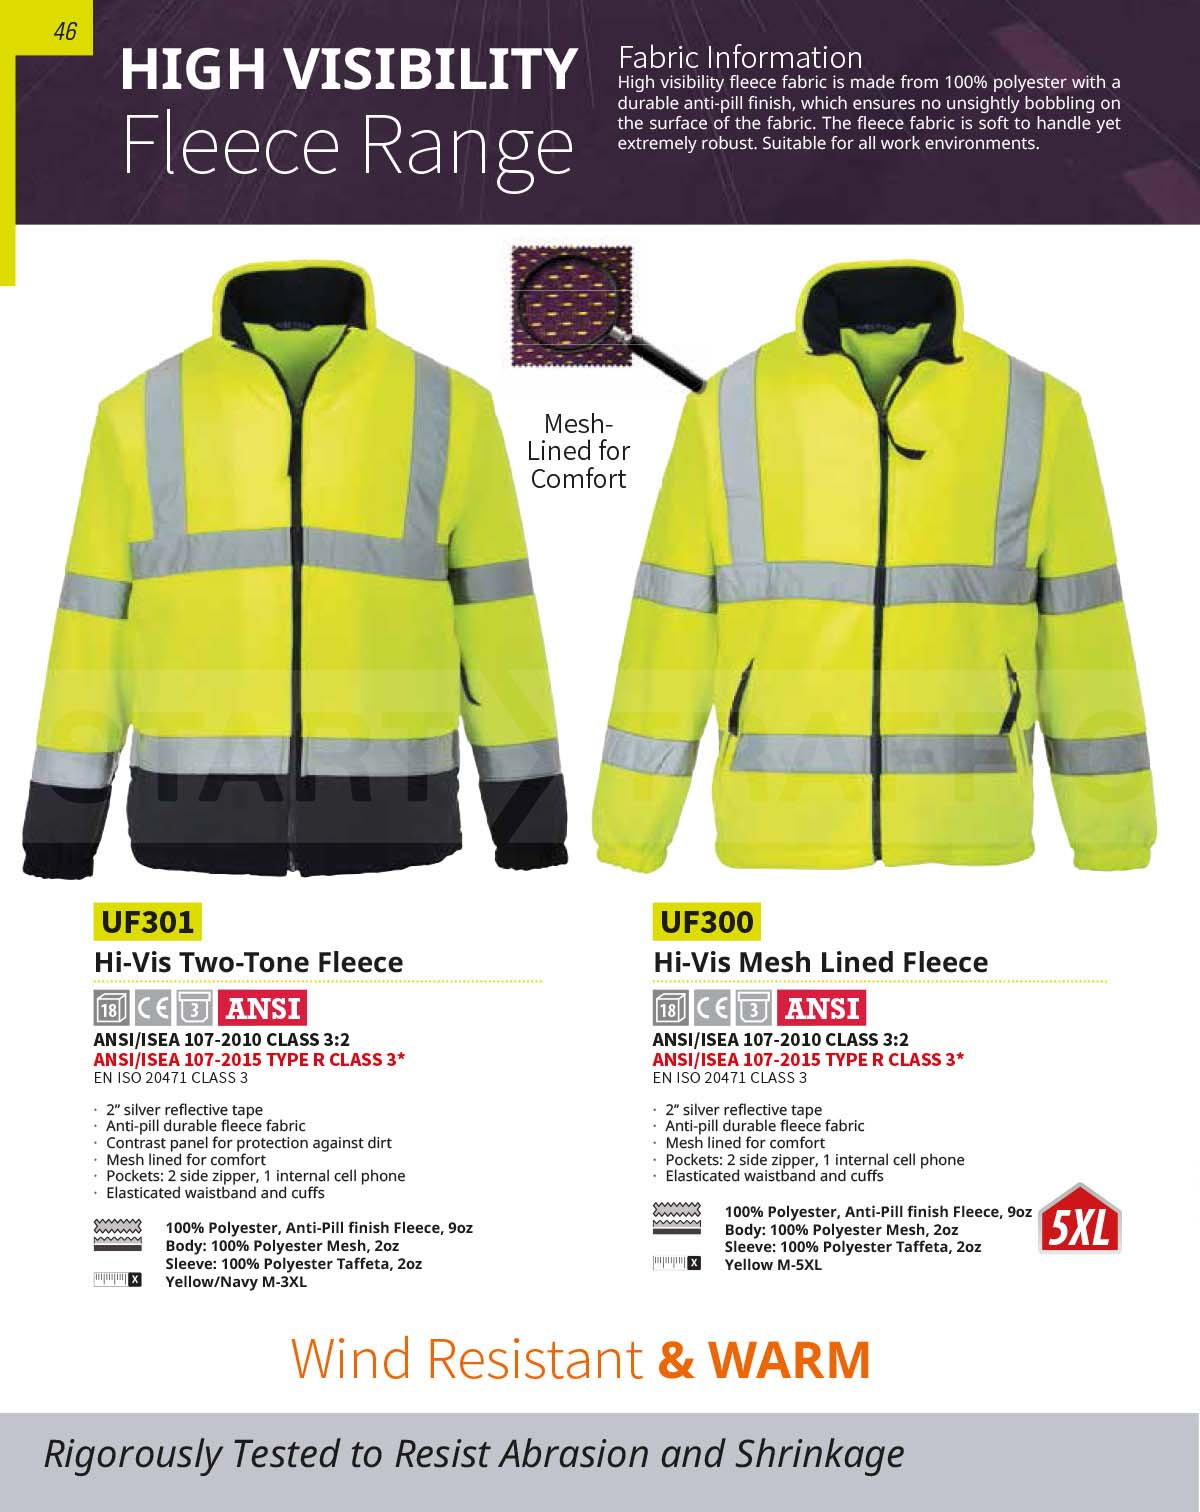 UF301 Two-Tone High Visibility Fleece Without Contrast